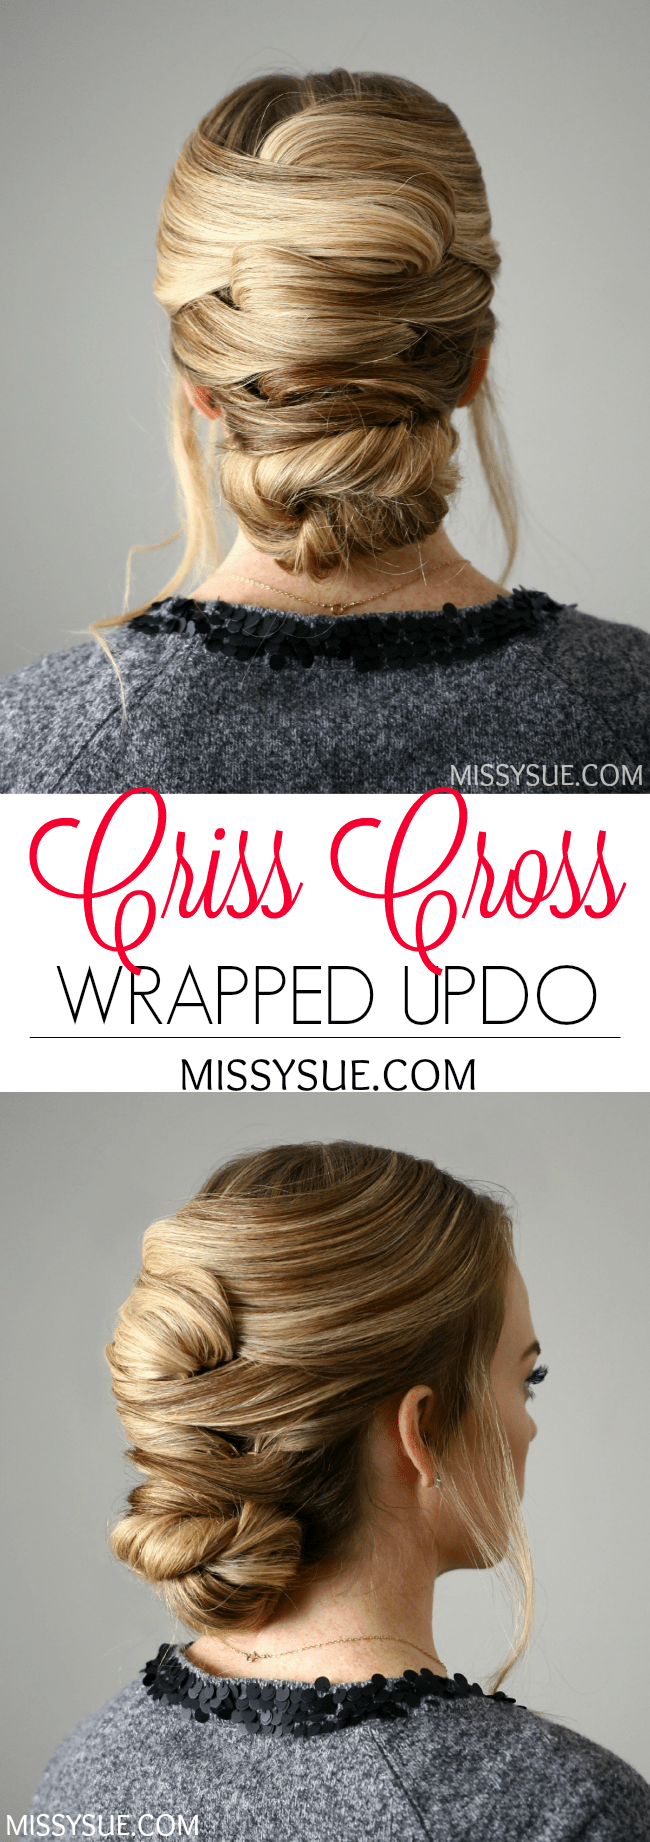 criss-cross-wrapped-updo-tutorial-missysueblog